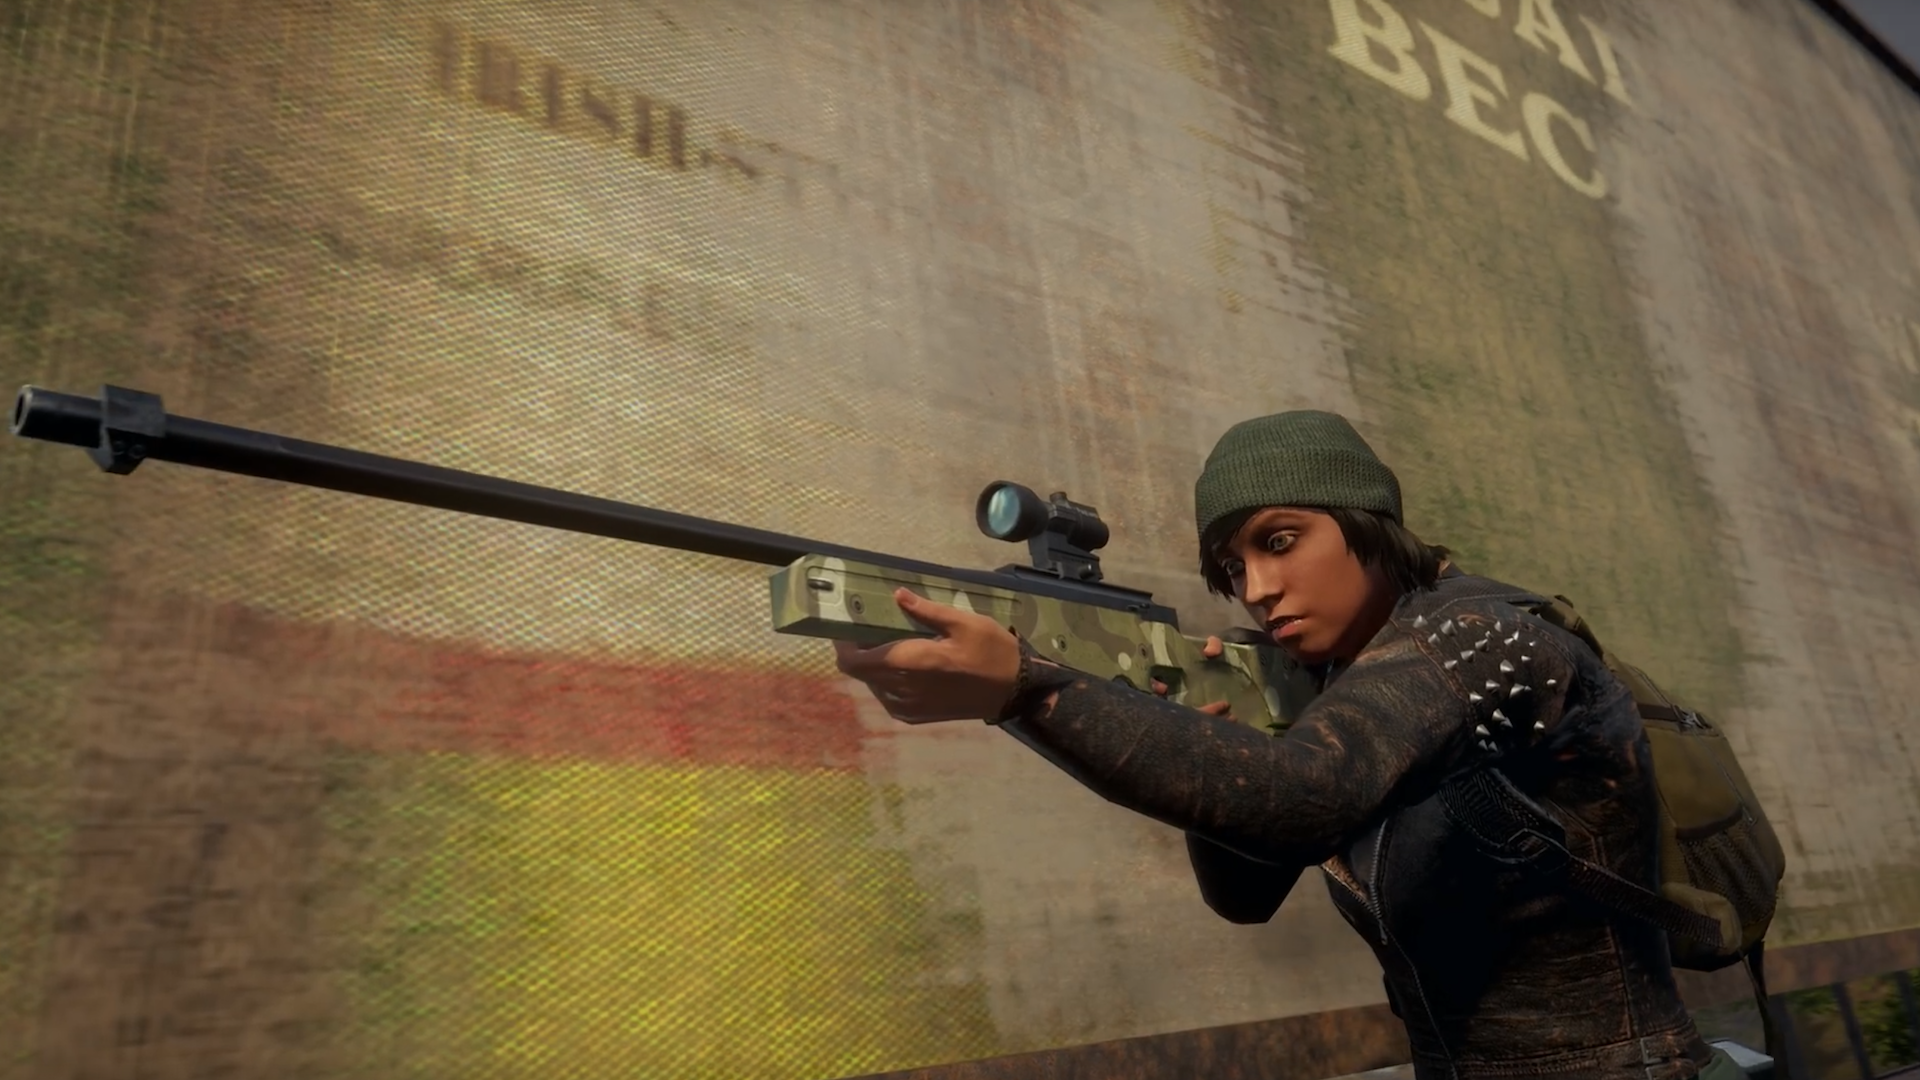 State of Decay Weapons Expert